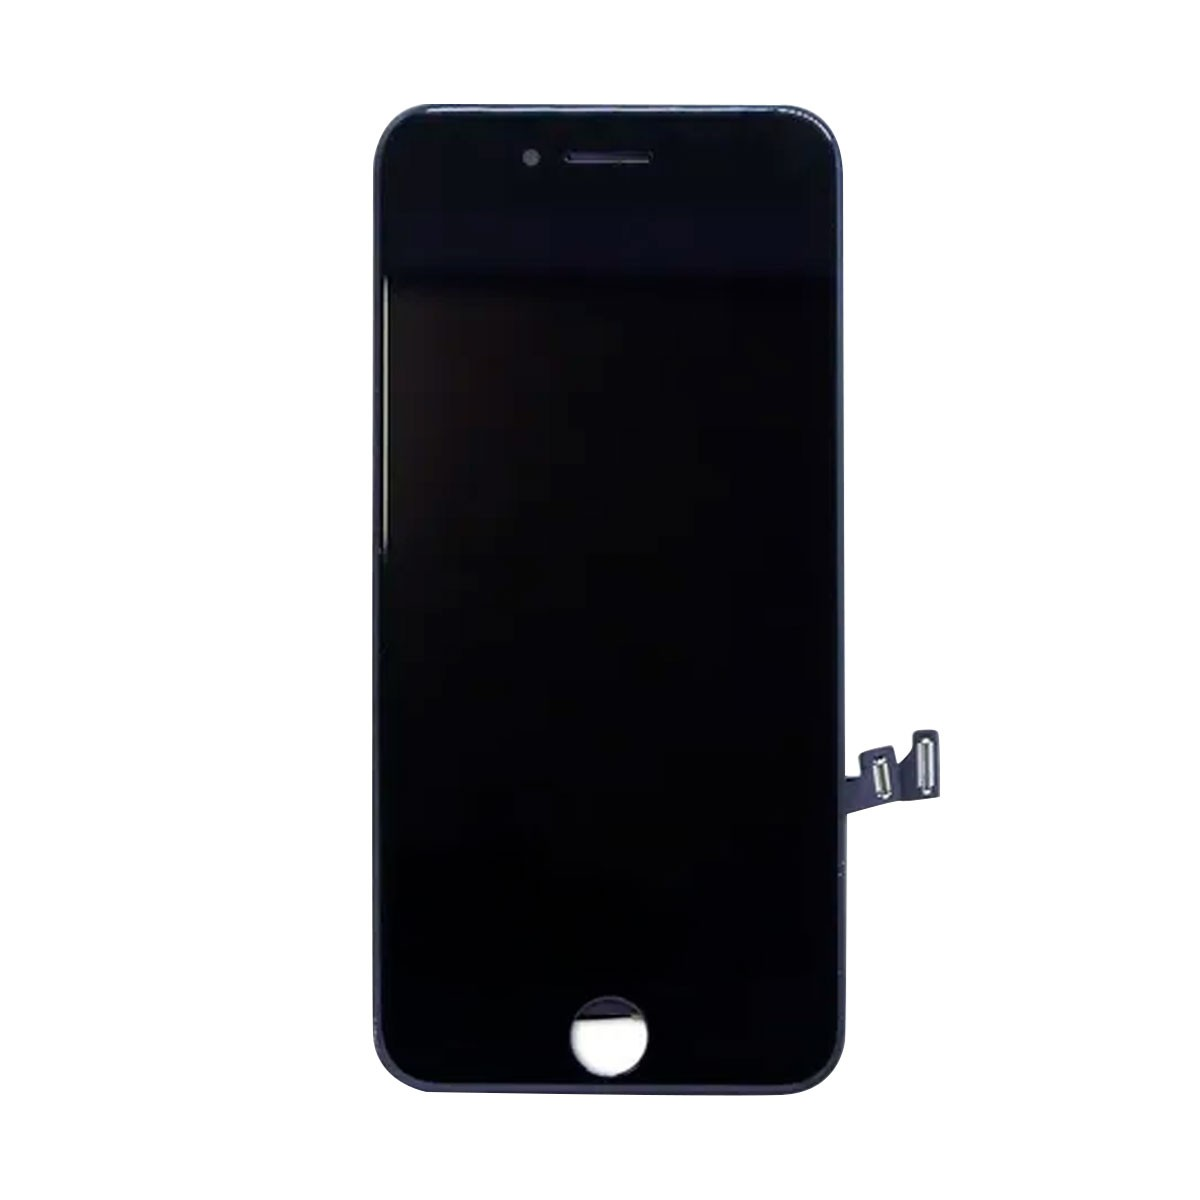 Tela Touch Display LCD Frontal - iPhone 7 7G - A1660 A1778 A1779 - AAA++